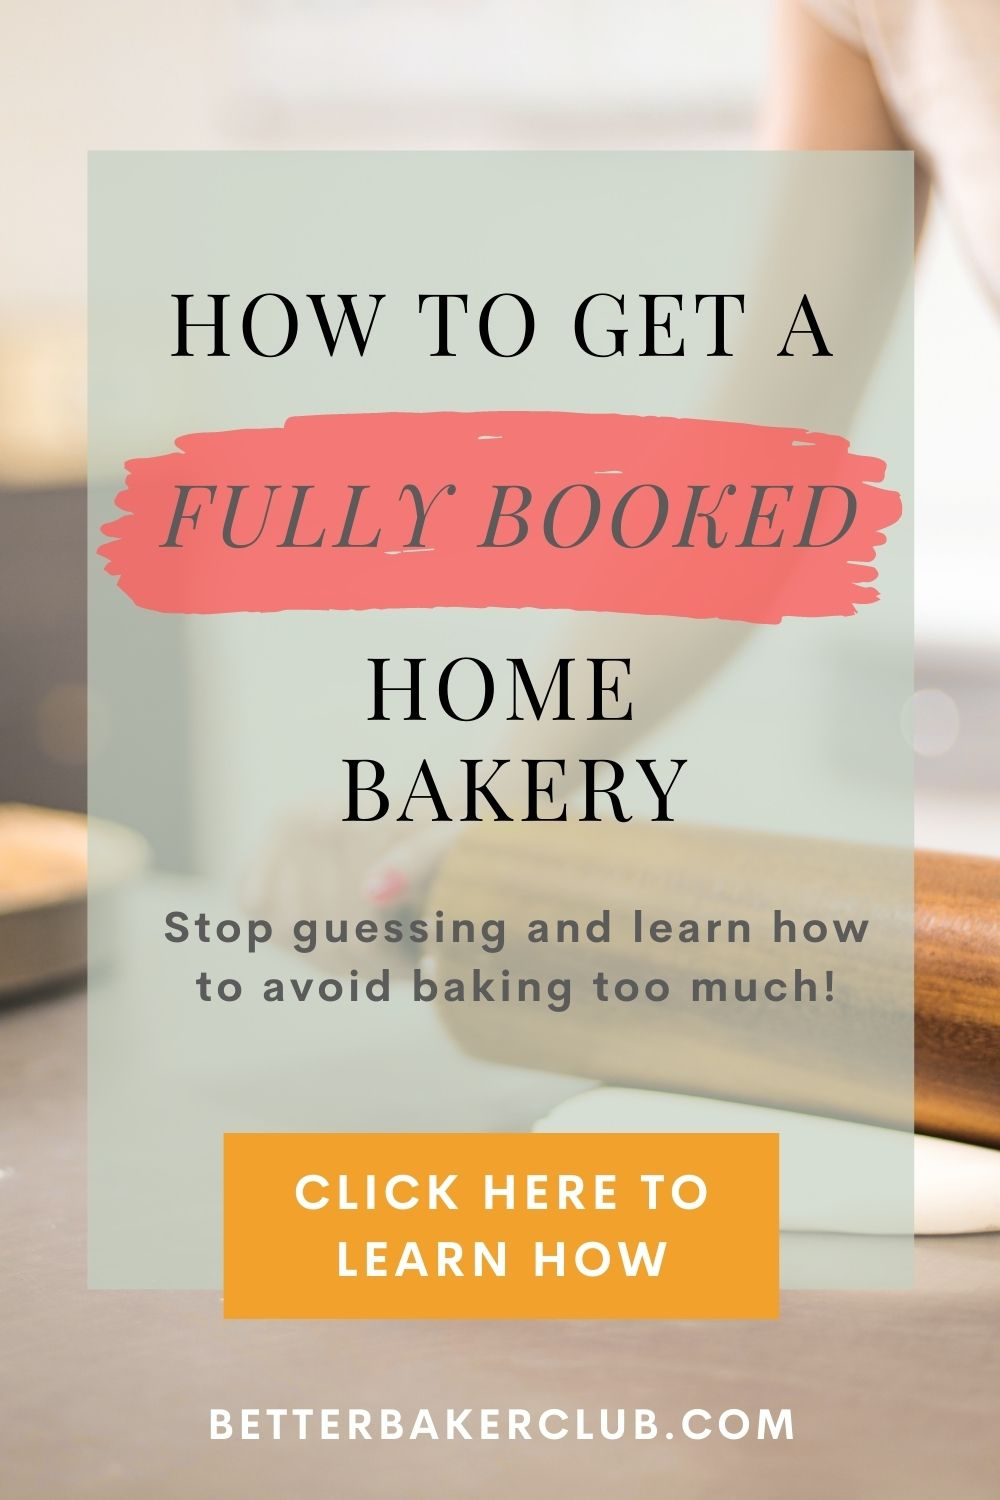 Promotional graphics for a fully booked home bakery by bakery expert Allyson Grant